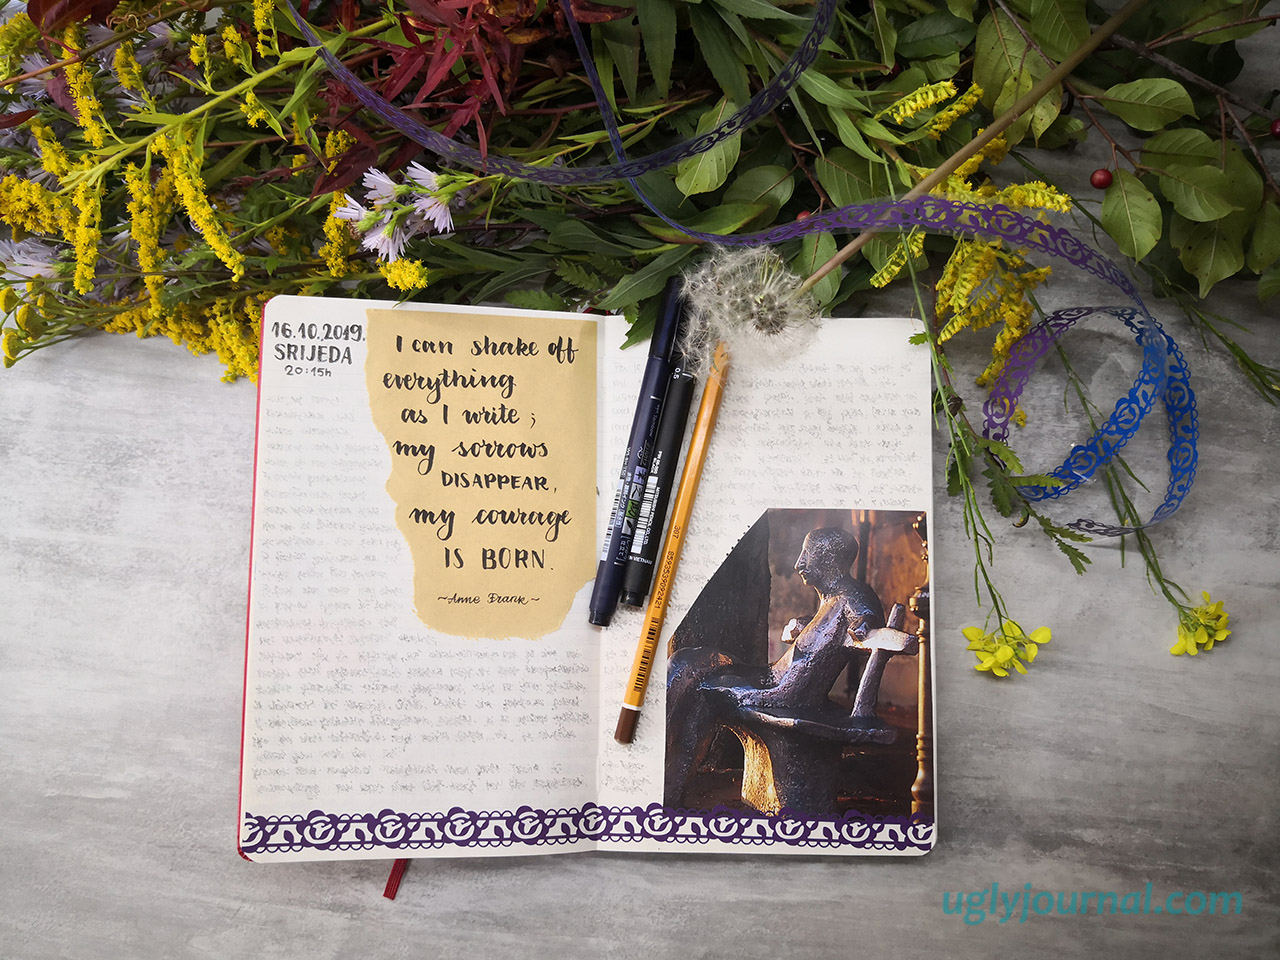 JOURNALING – THE BEST FREE SELF-HELP THERAPY